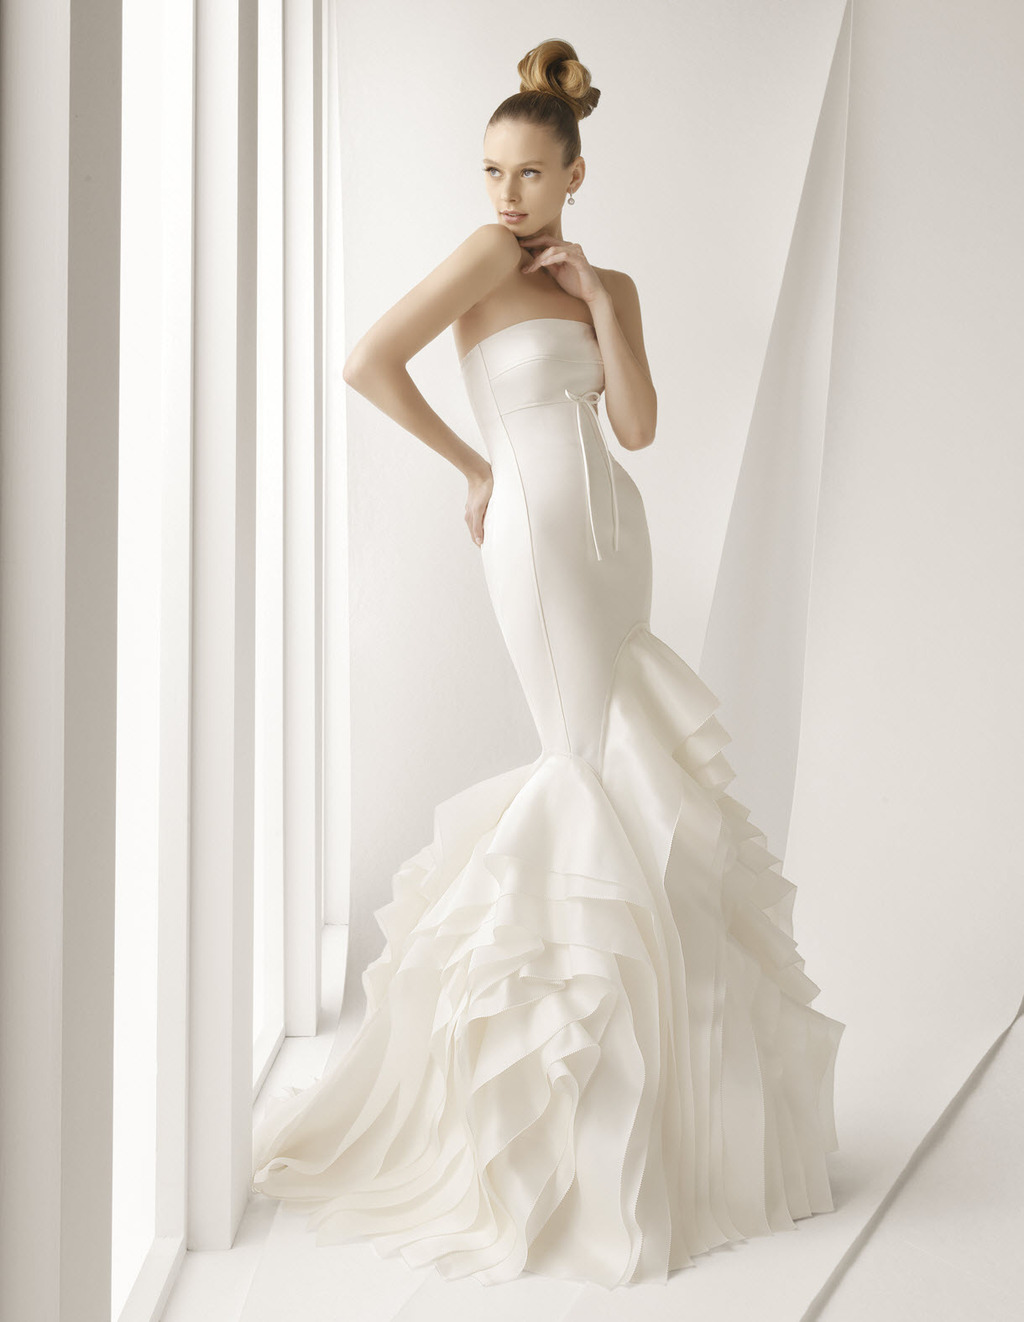 Stunning ivory strapless mermaid wedding dress with textured skirt and dainty bow